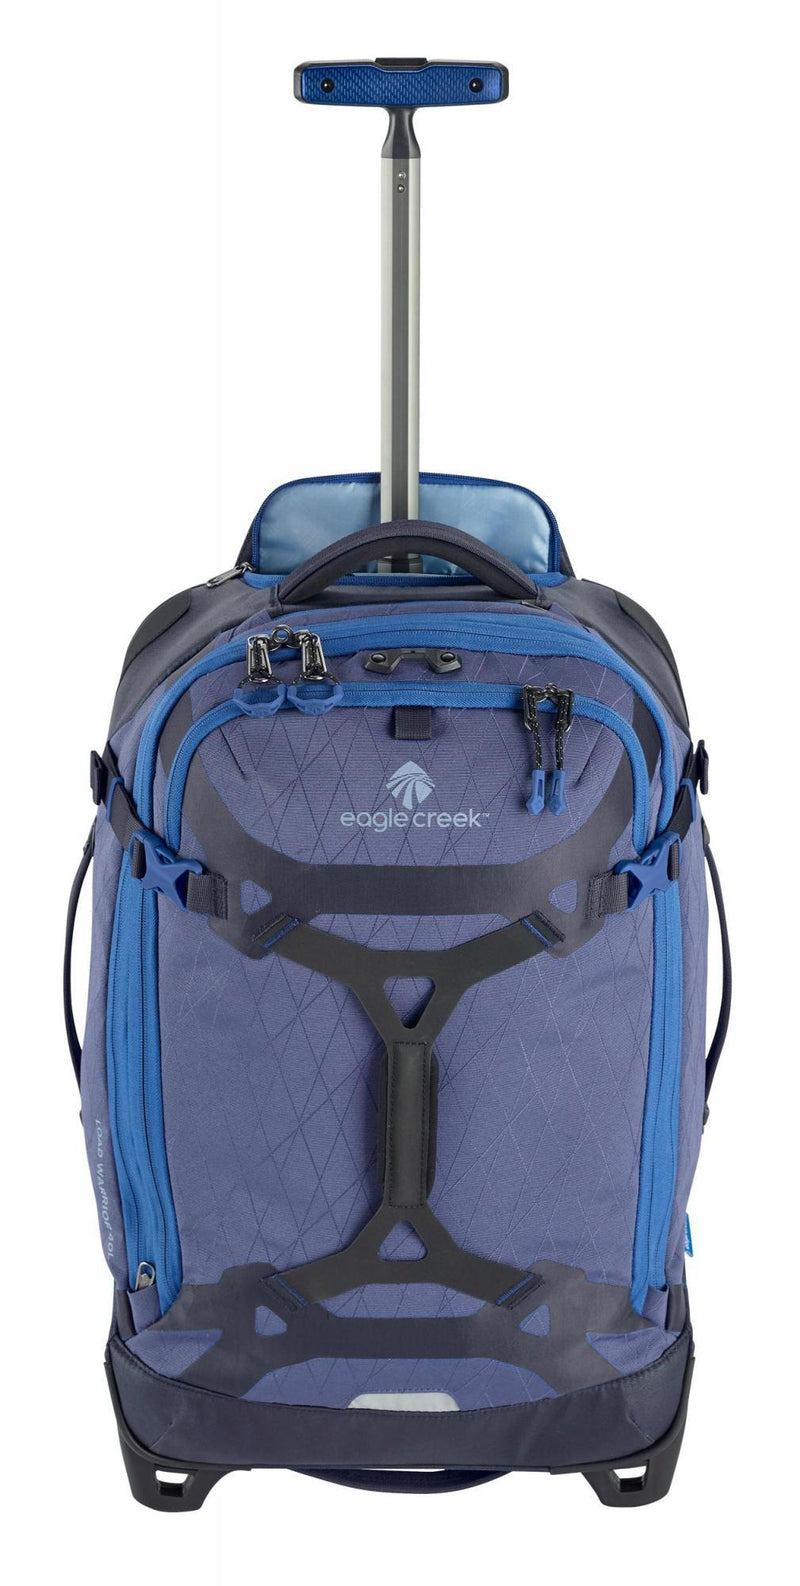 Eagle Creek Gear Warrior Wheeled Duffel Carry On-Luggage Pros